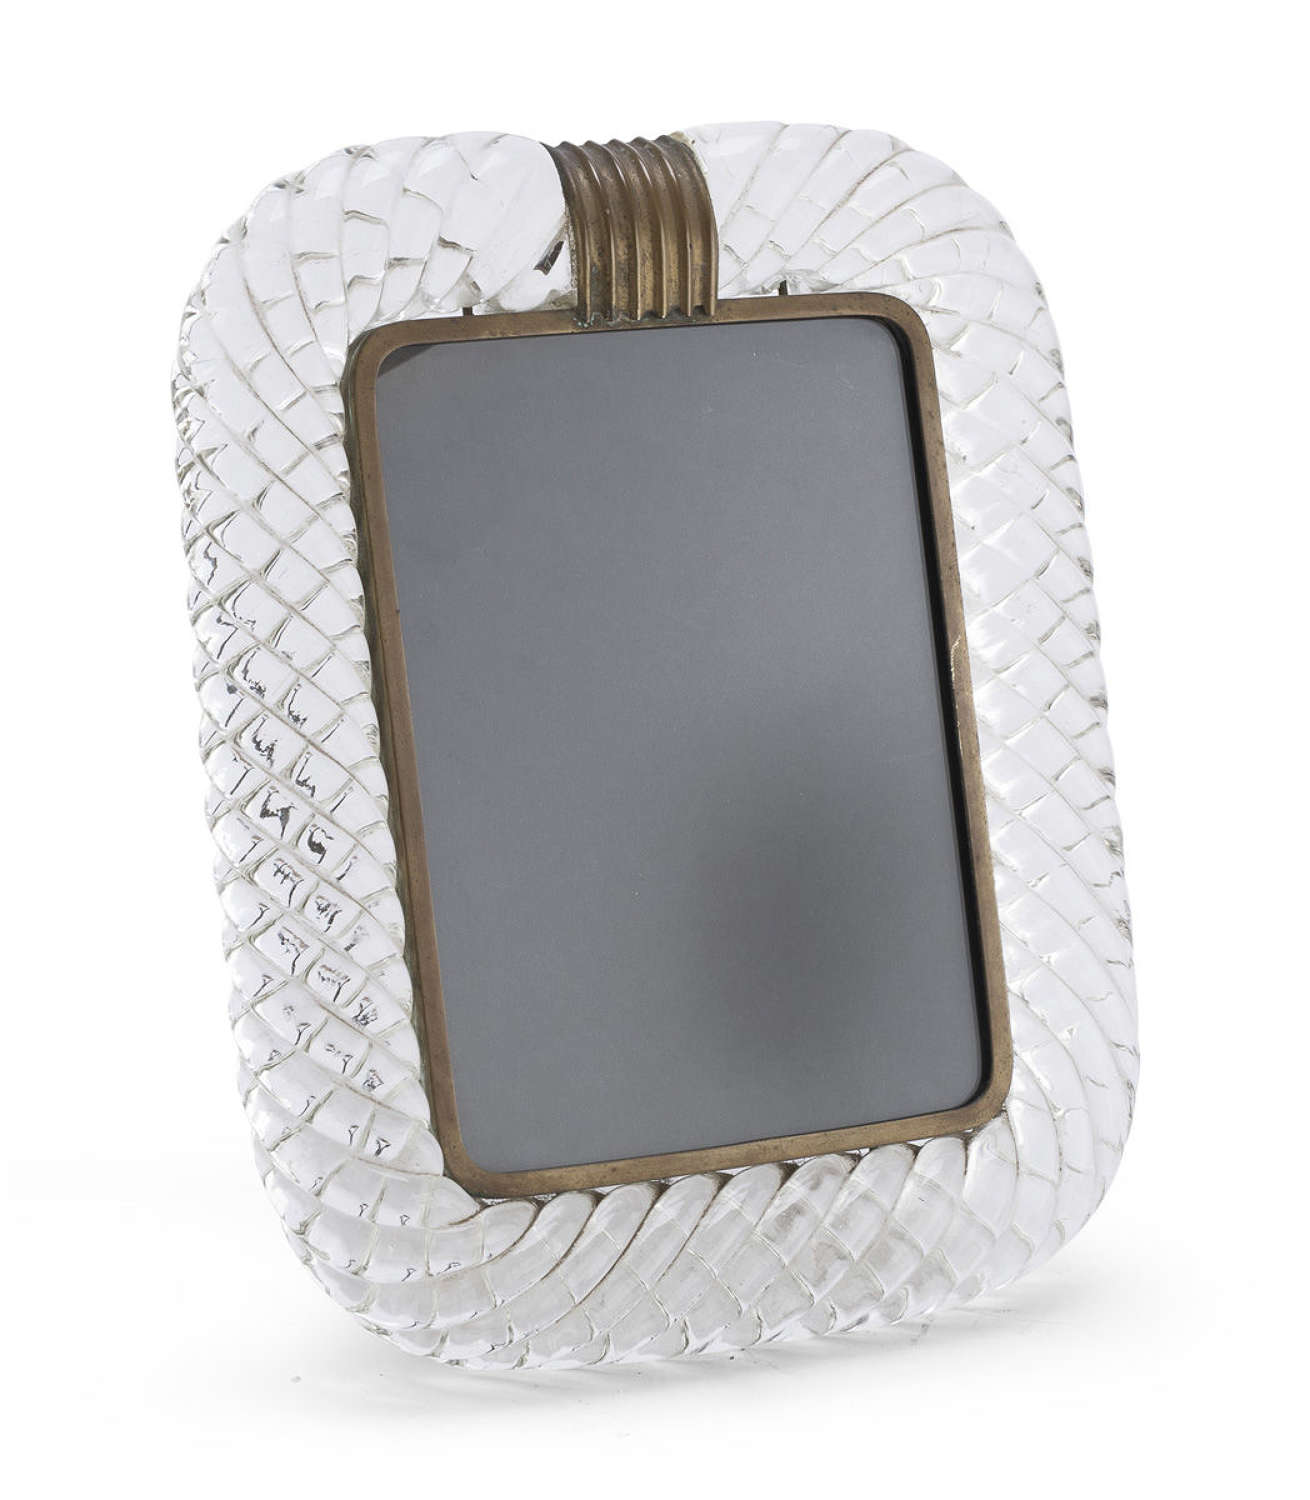 Venini glass photoframe